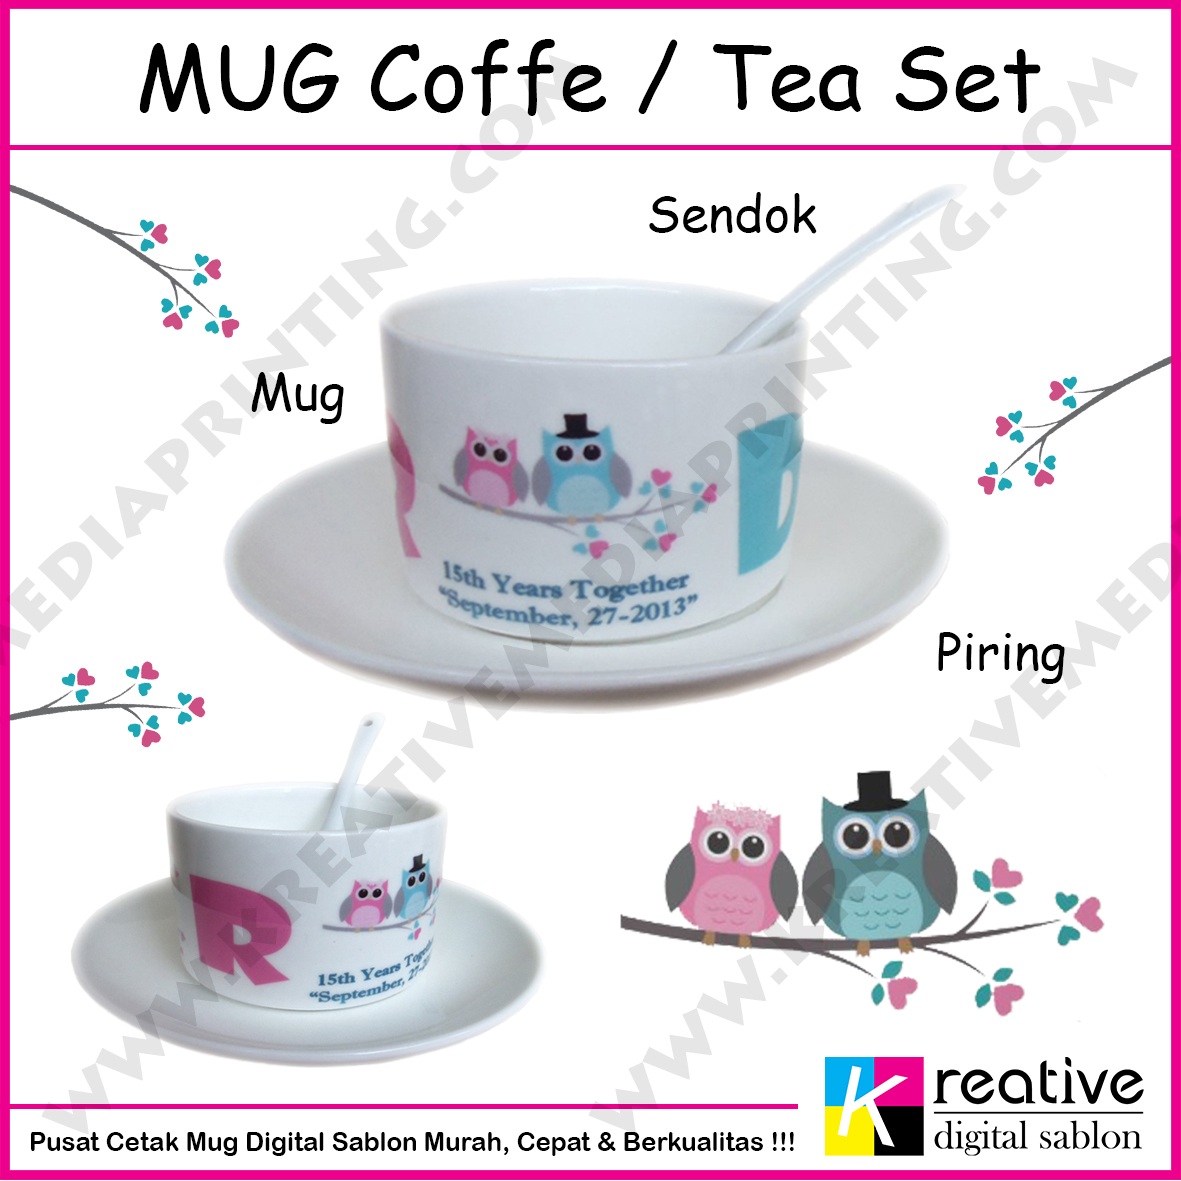 Cetak Mug Coffe Tea Set